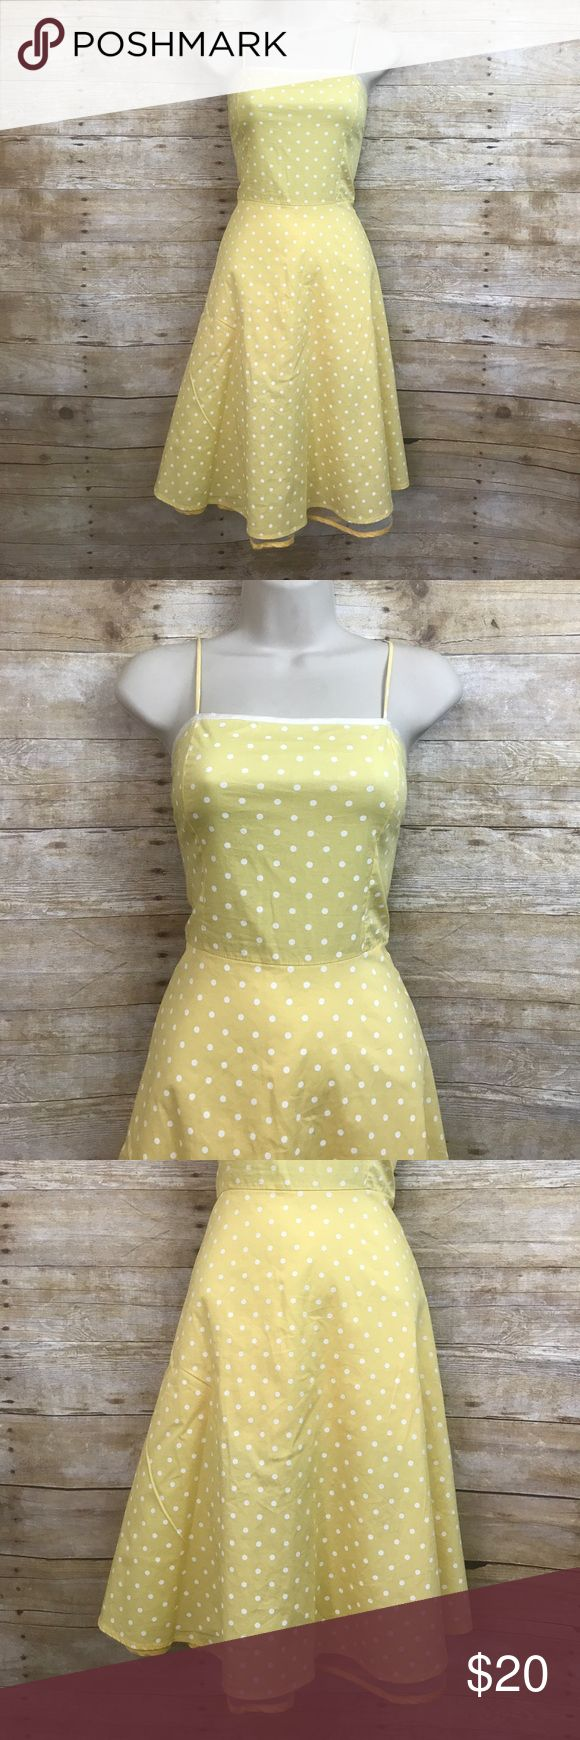 """Yabes Yellow Polka Dot Pinup 50's Inspired Dress Yabes Brand - Size Medium - Yellow/White Polka Dot Sleeveless Pinup 50's inspired dress - Built in mesh slip with yellow trim - zips up in back - excellent condition - pet and smoke free home - FAST SHIPPING!! / Measurements: Waist 30"""" (stretchy) Length 37.5"""" Bust 37"""" Yabes Dresses Midi"""